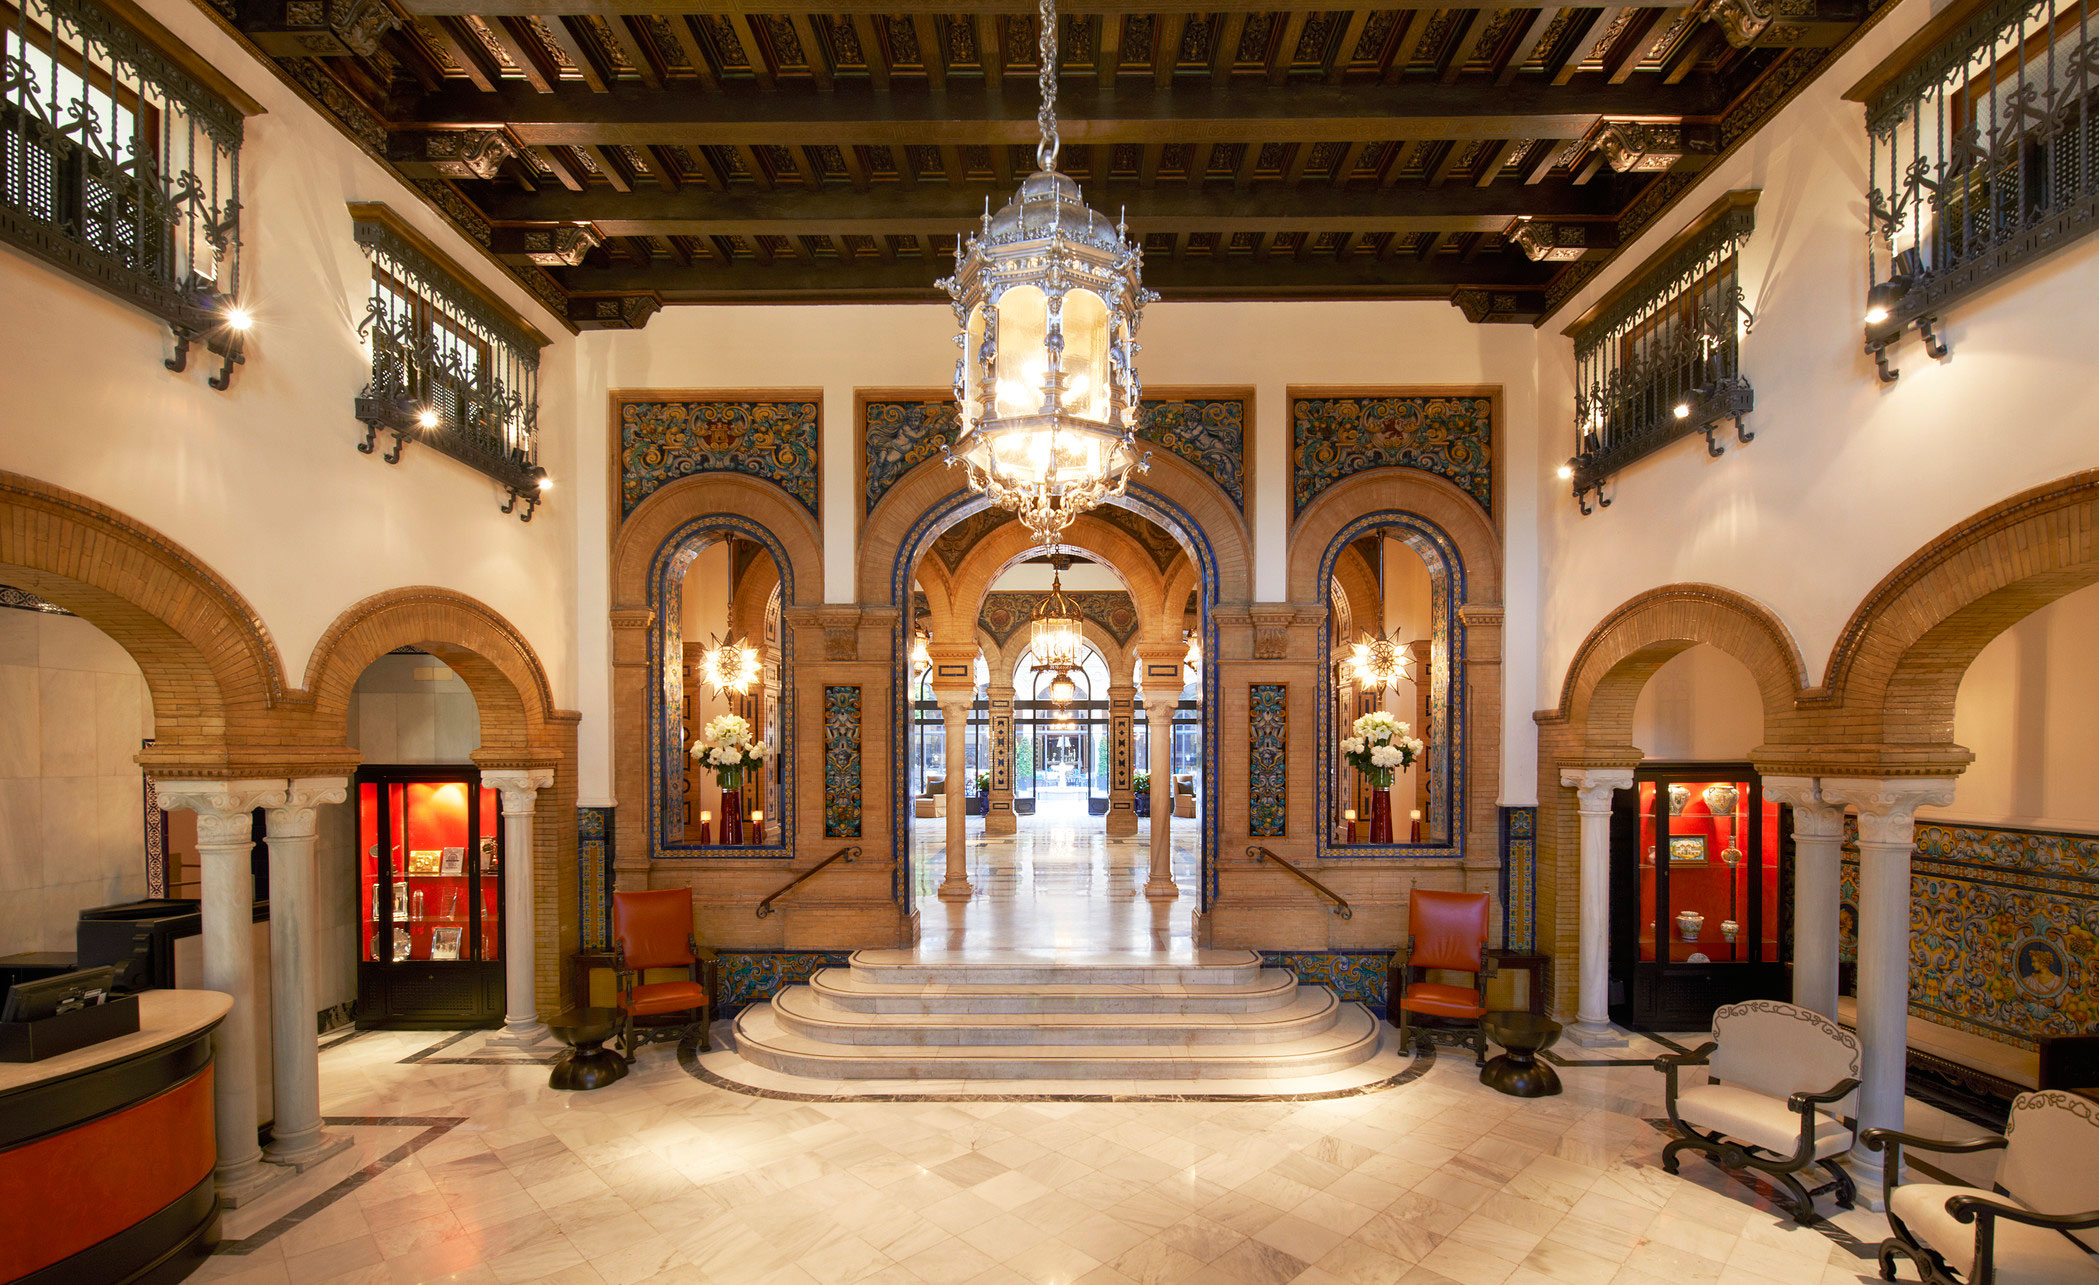 Starwood S Luxury Collection Invests 200 Million To Re Iconic Heritage Hotels In Europe